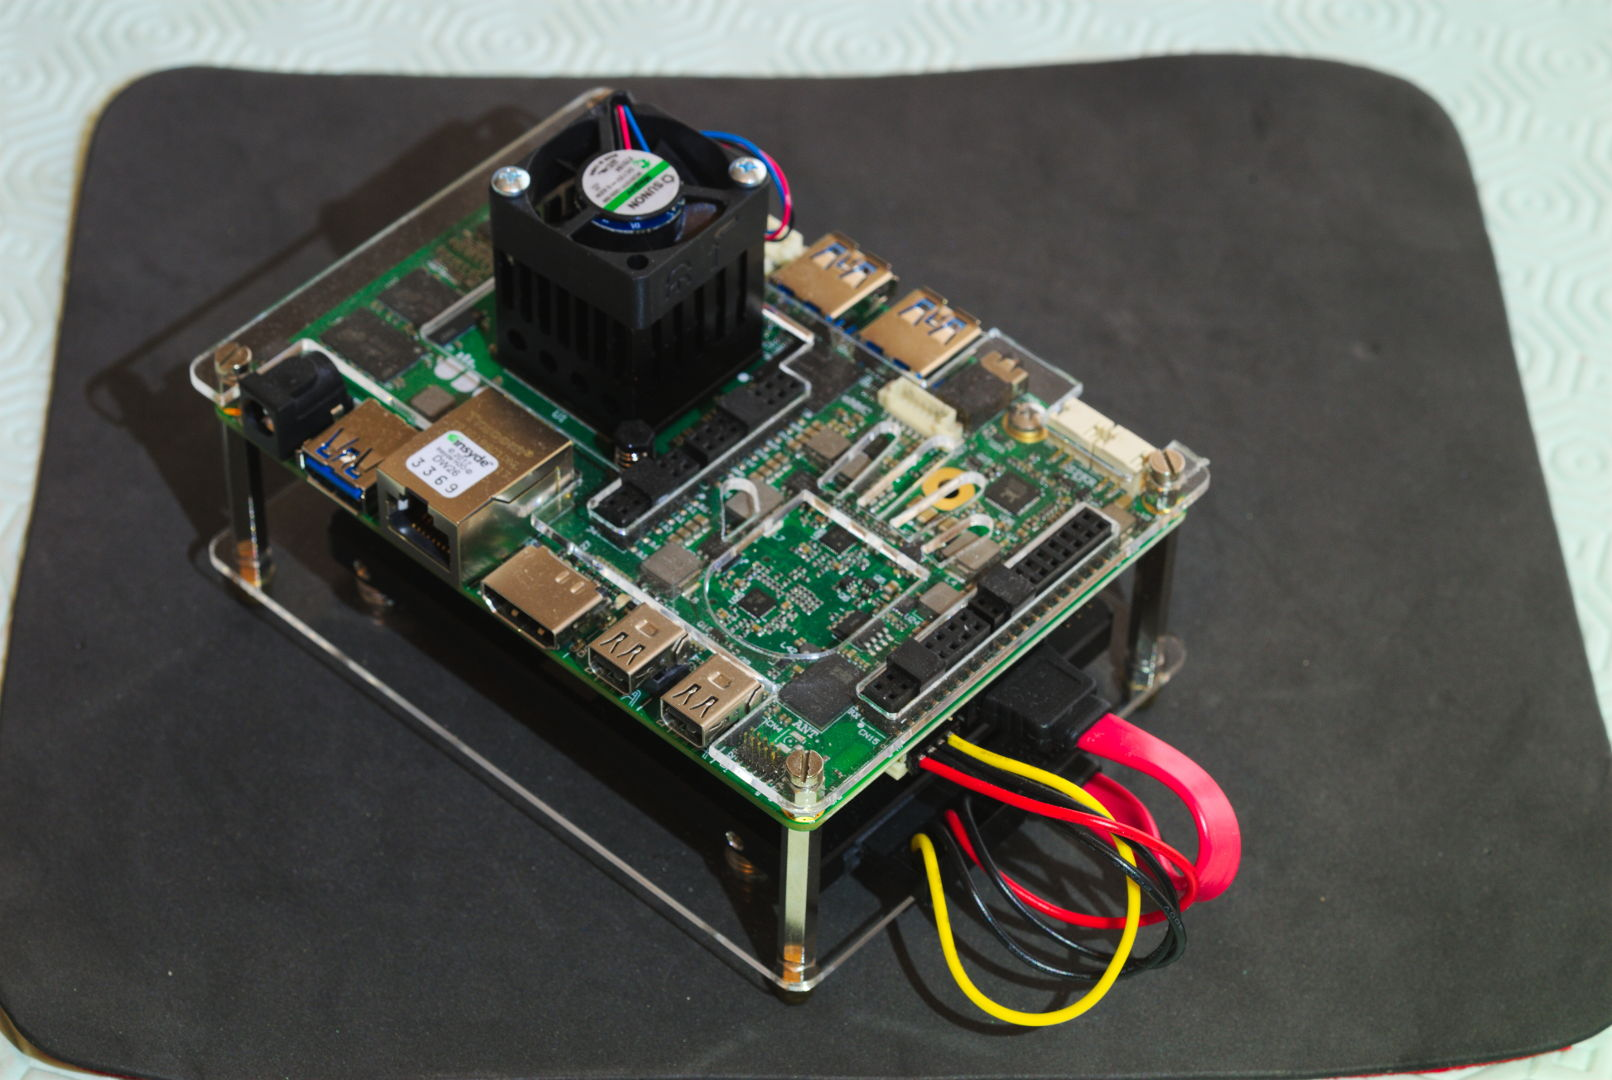 Fig. 8 - SBC UdooX86 Ultra con case in acrilico modificato da Stefano Colonna